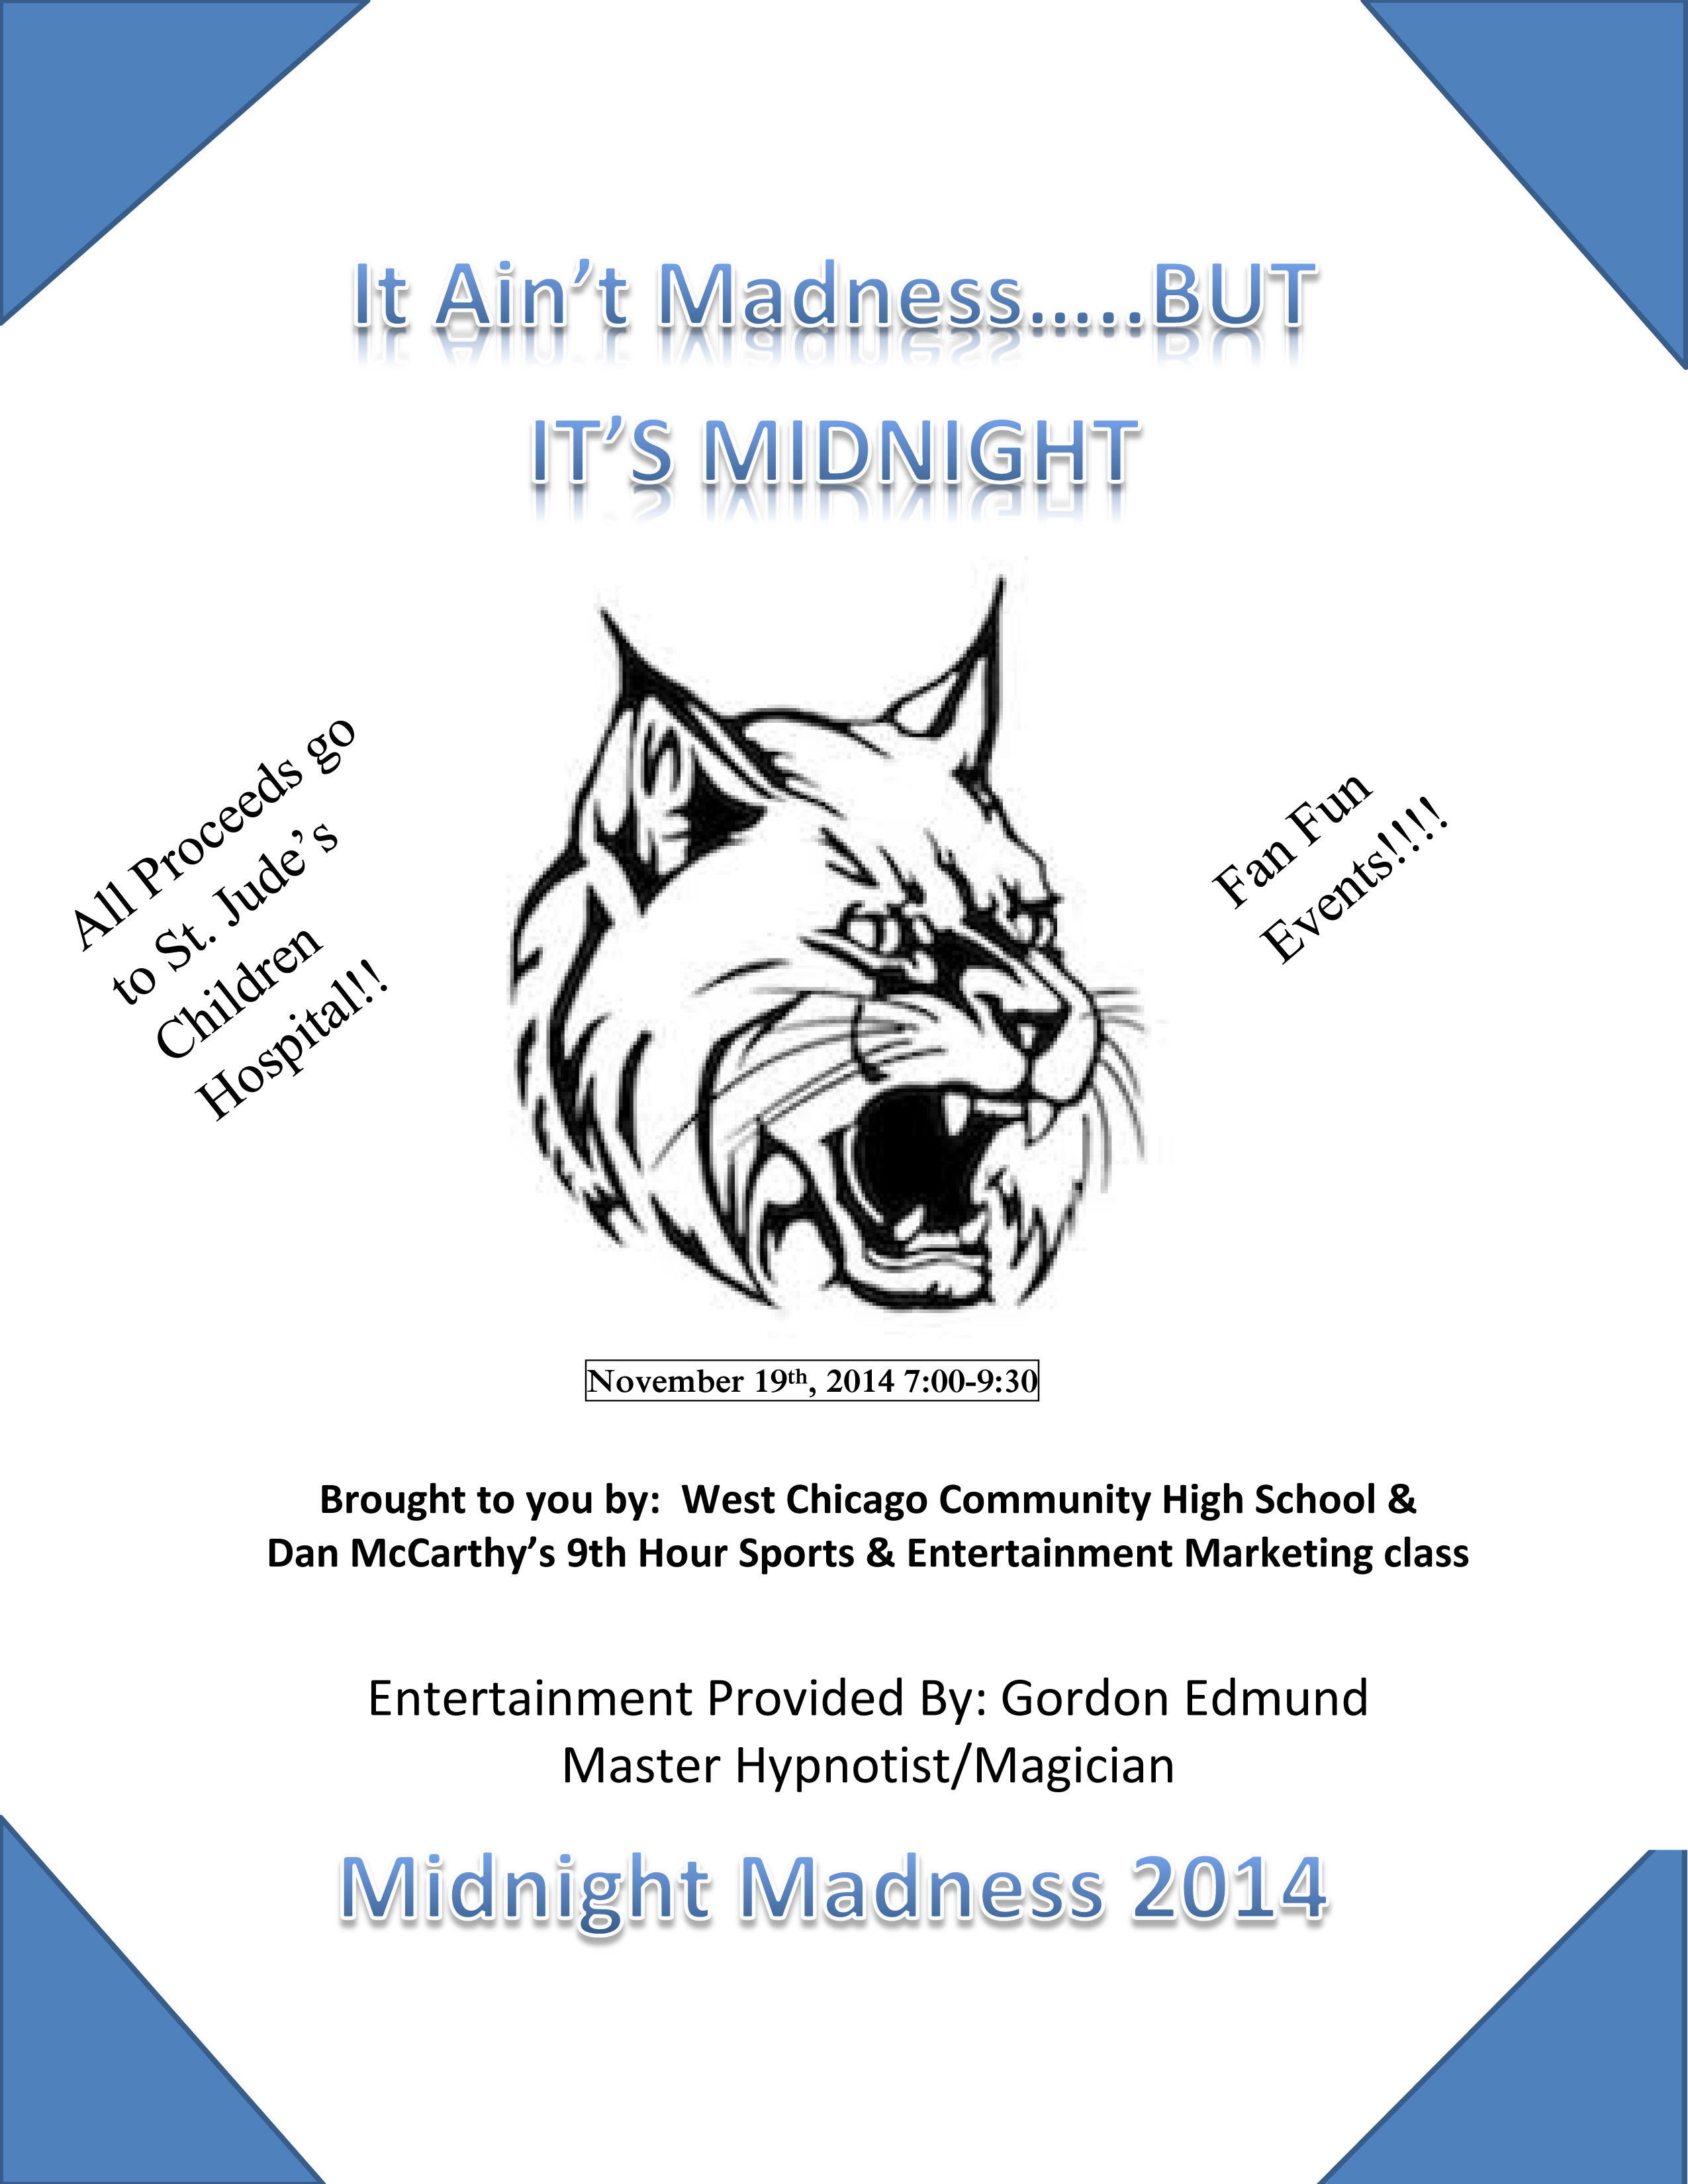 Community Invited for Midnight Madness